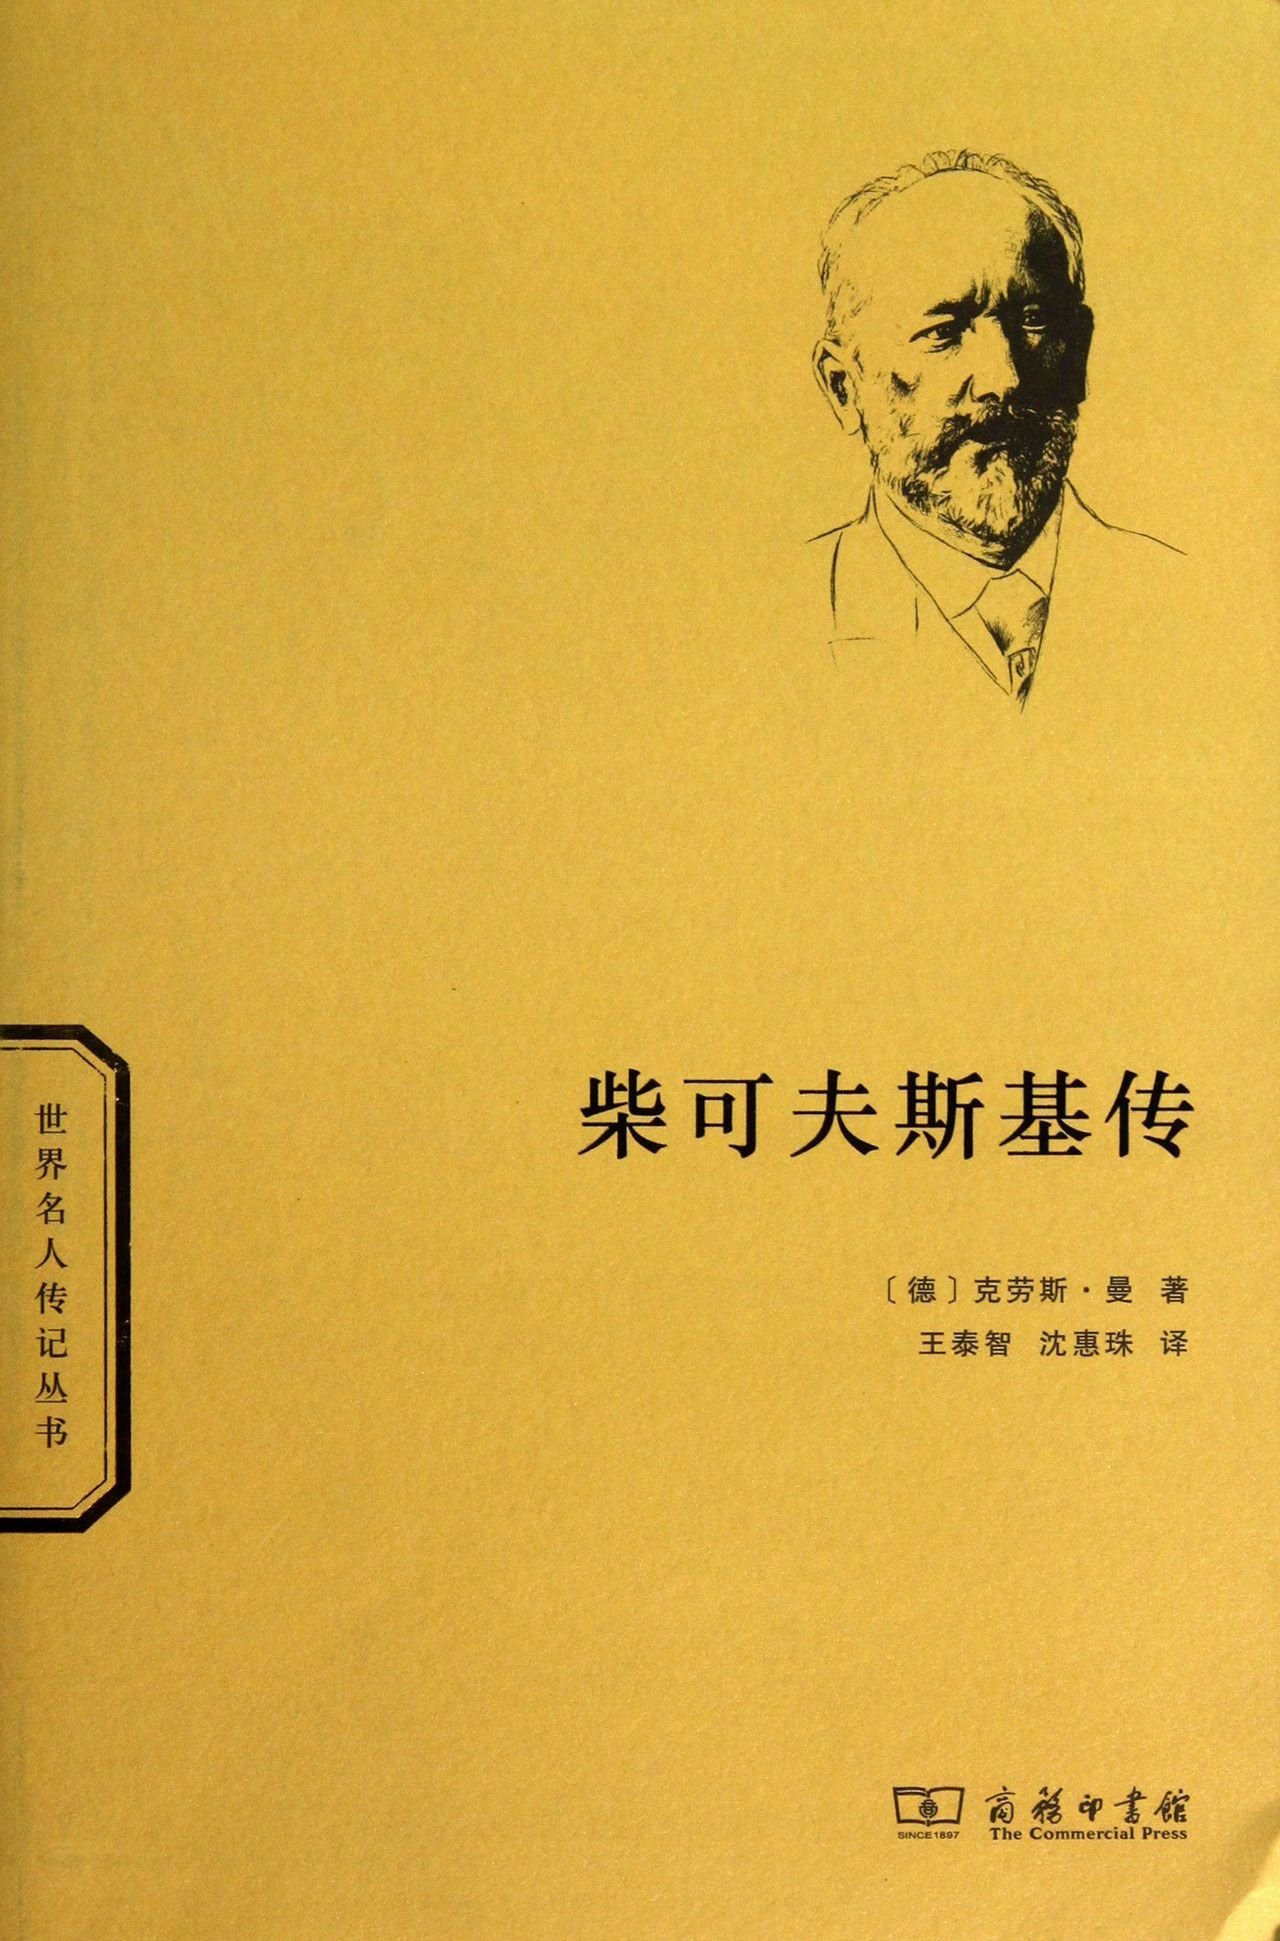 World Celebrity Biography Series: Tchaikovsky Biography 9787100094832 Claudia Mann supplier(Chinese Edition) ebook